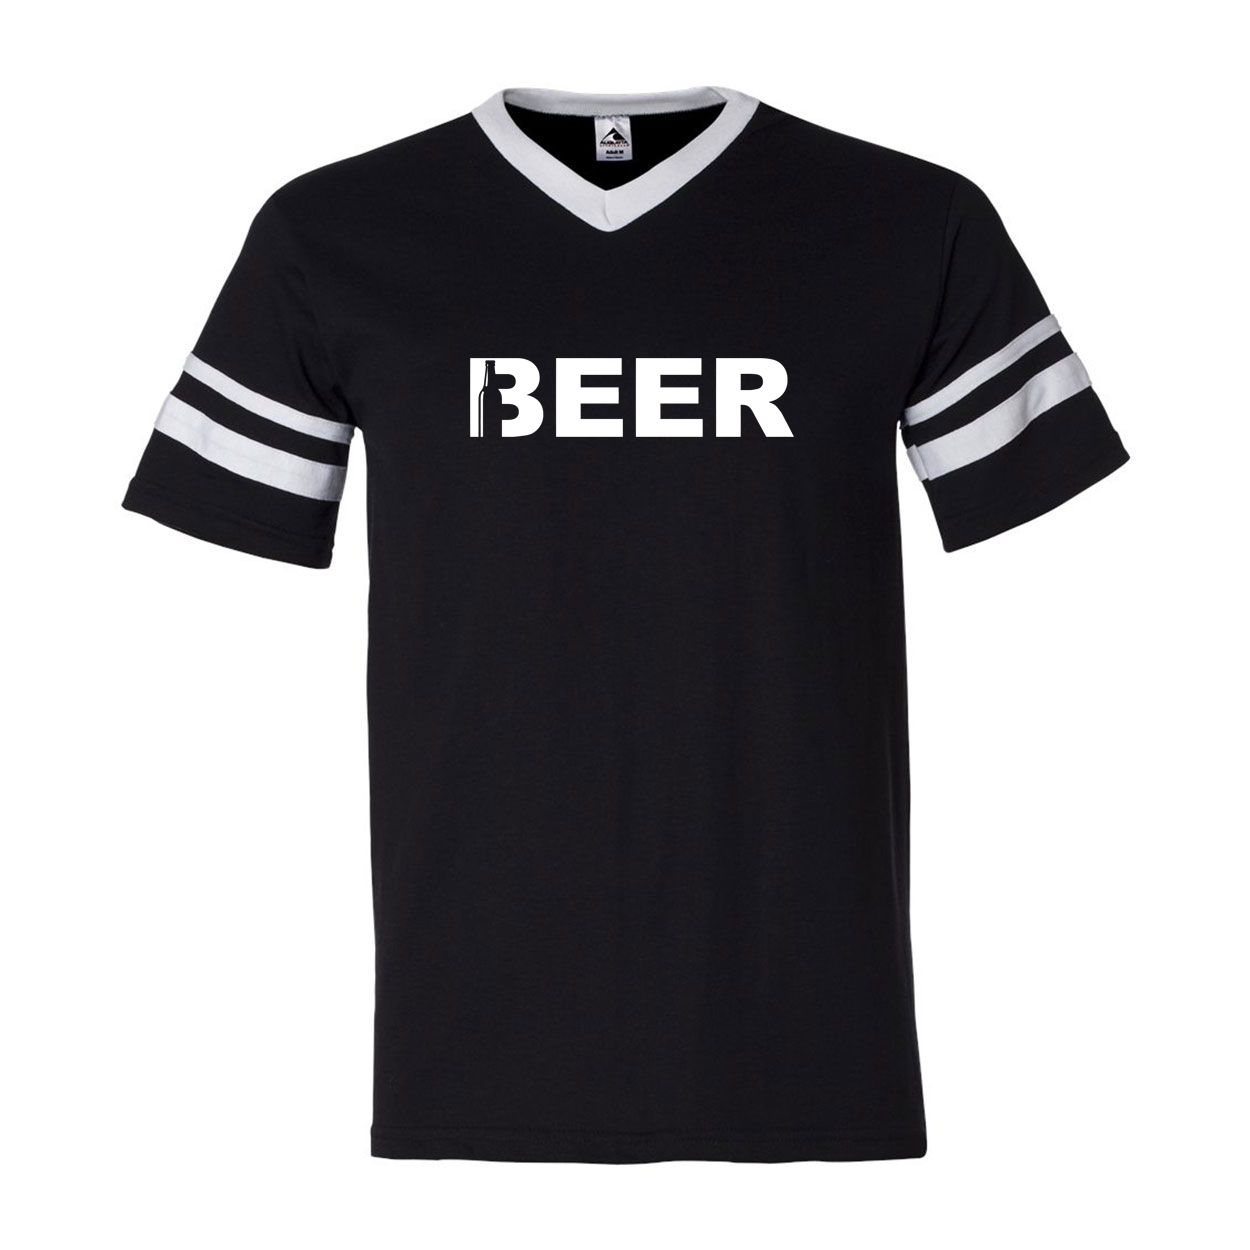 Beer Bottle Logo Classic Premium Striped Jersey T-Shirt Black/White (White Logo)